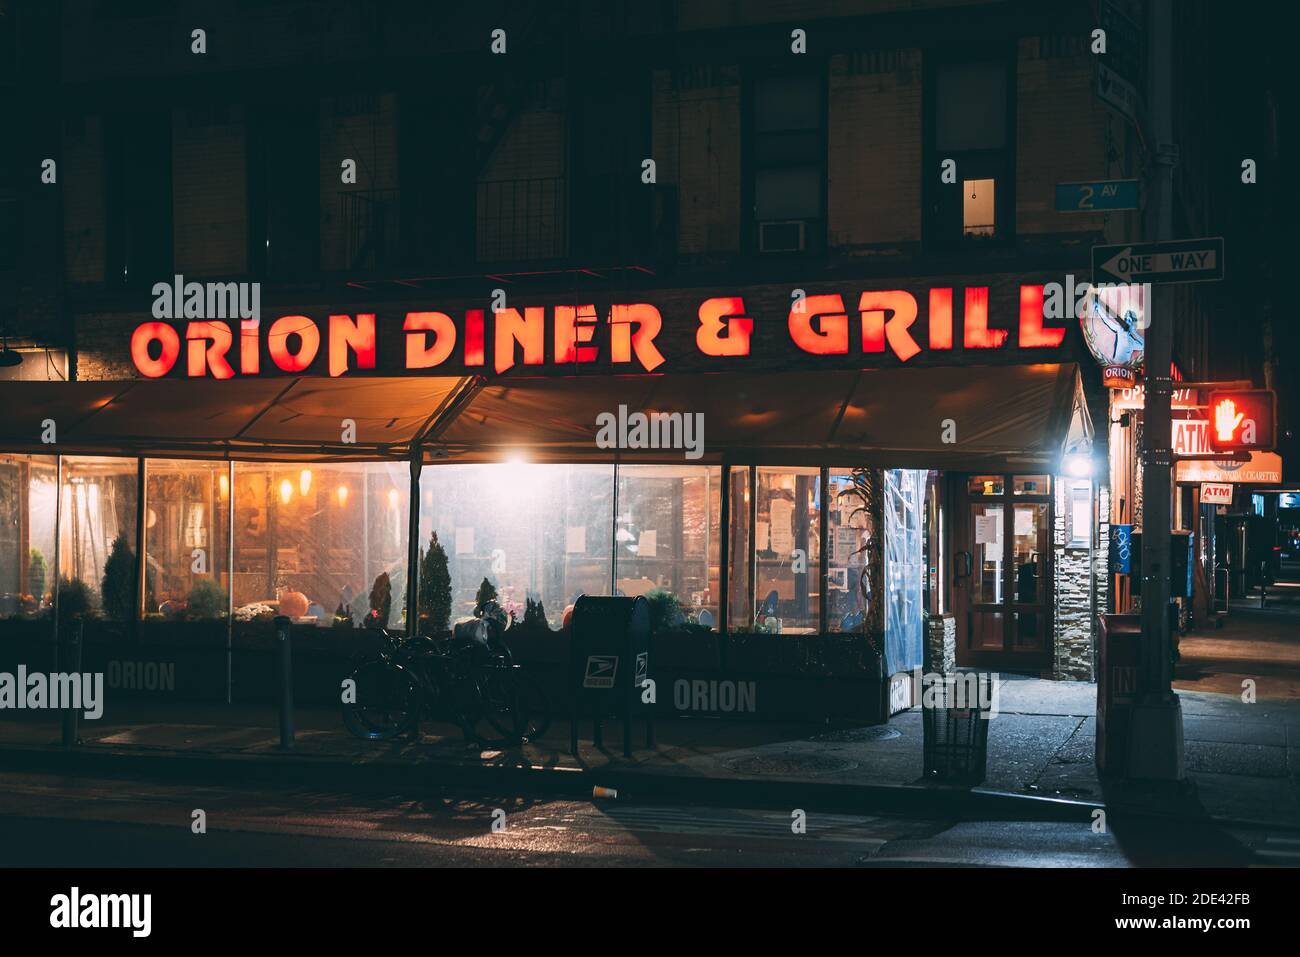 Orion Restaurant High Resolution Stock Photography And Images Alamy